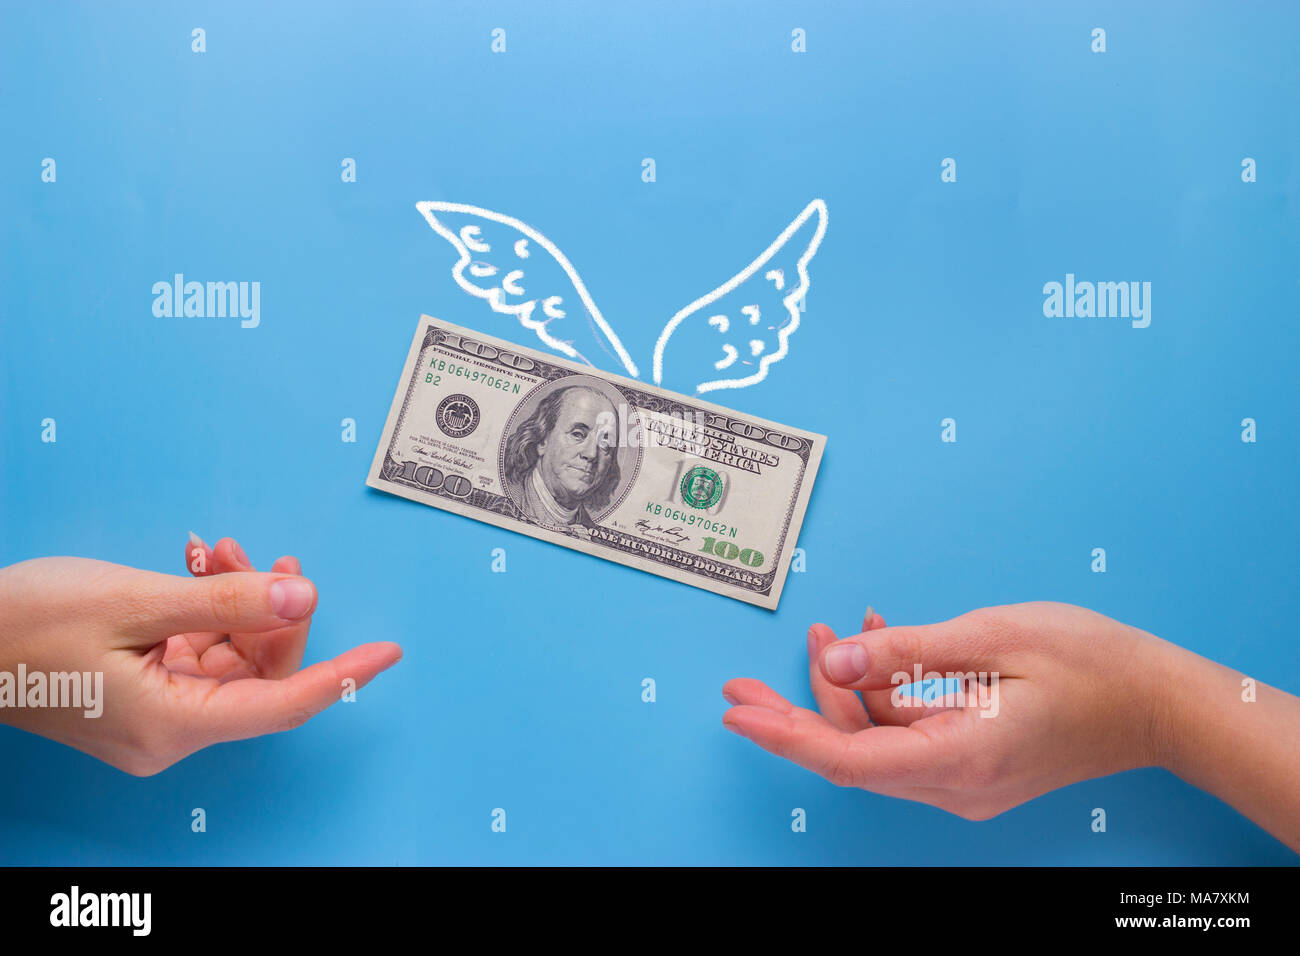 Money Wire Transfer Stock Photos & Money Wire Transfer Stock Images ...